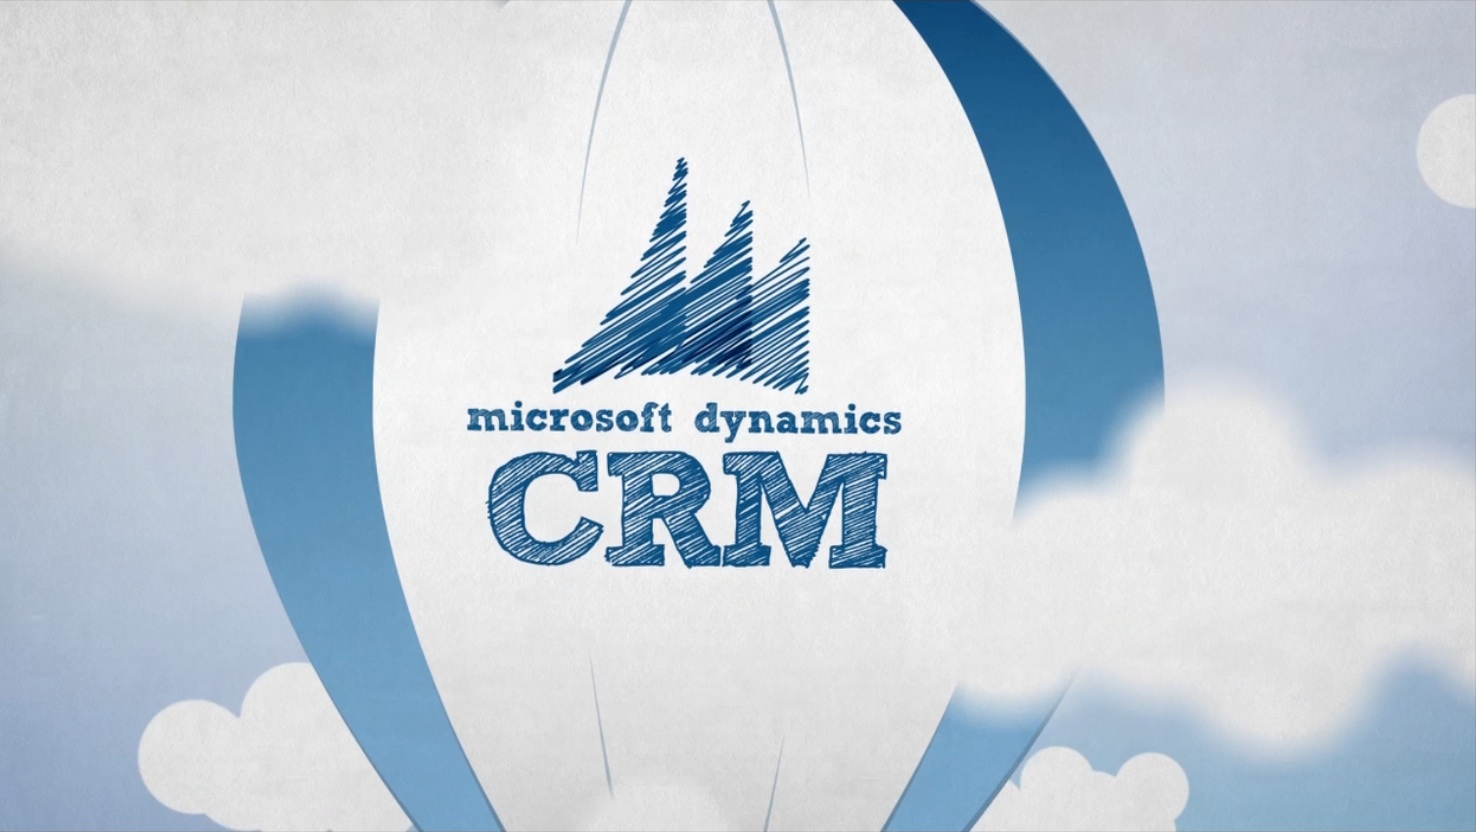 Microsoft Dynamics CRM: Love what you do.. oh yeah!